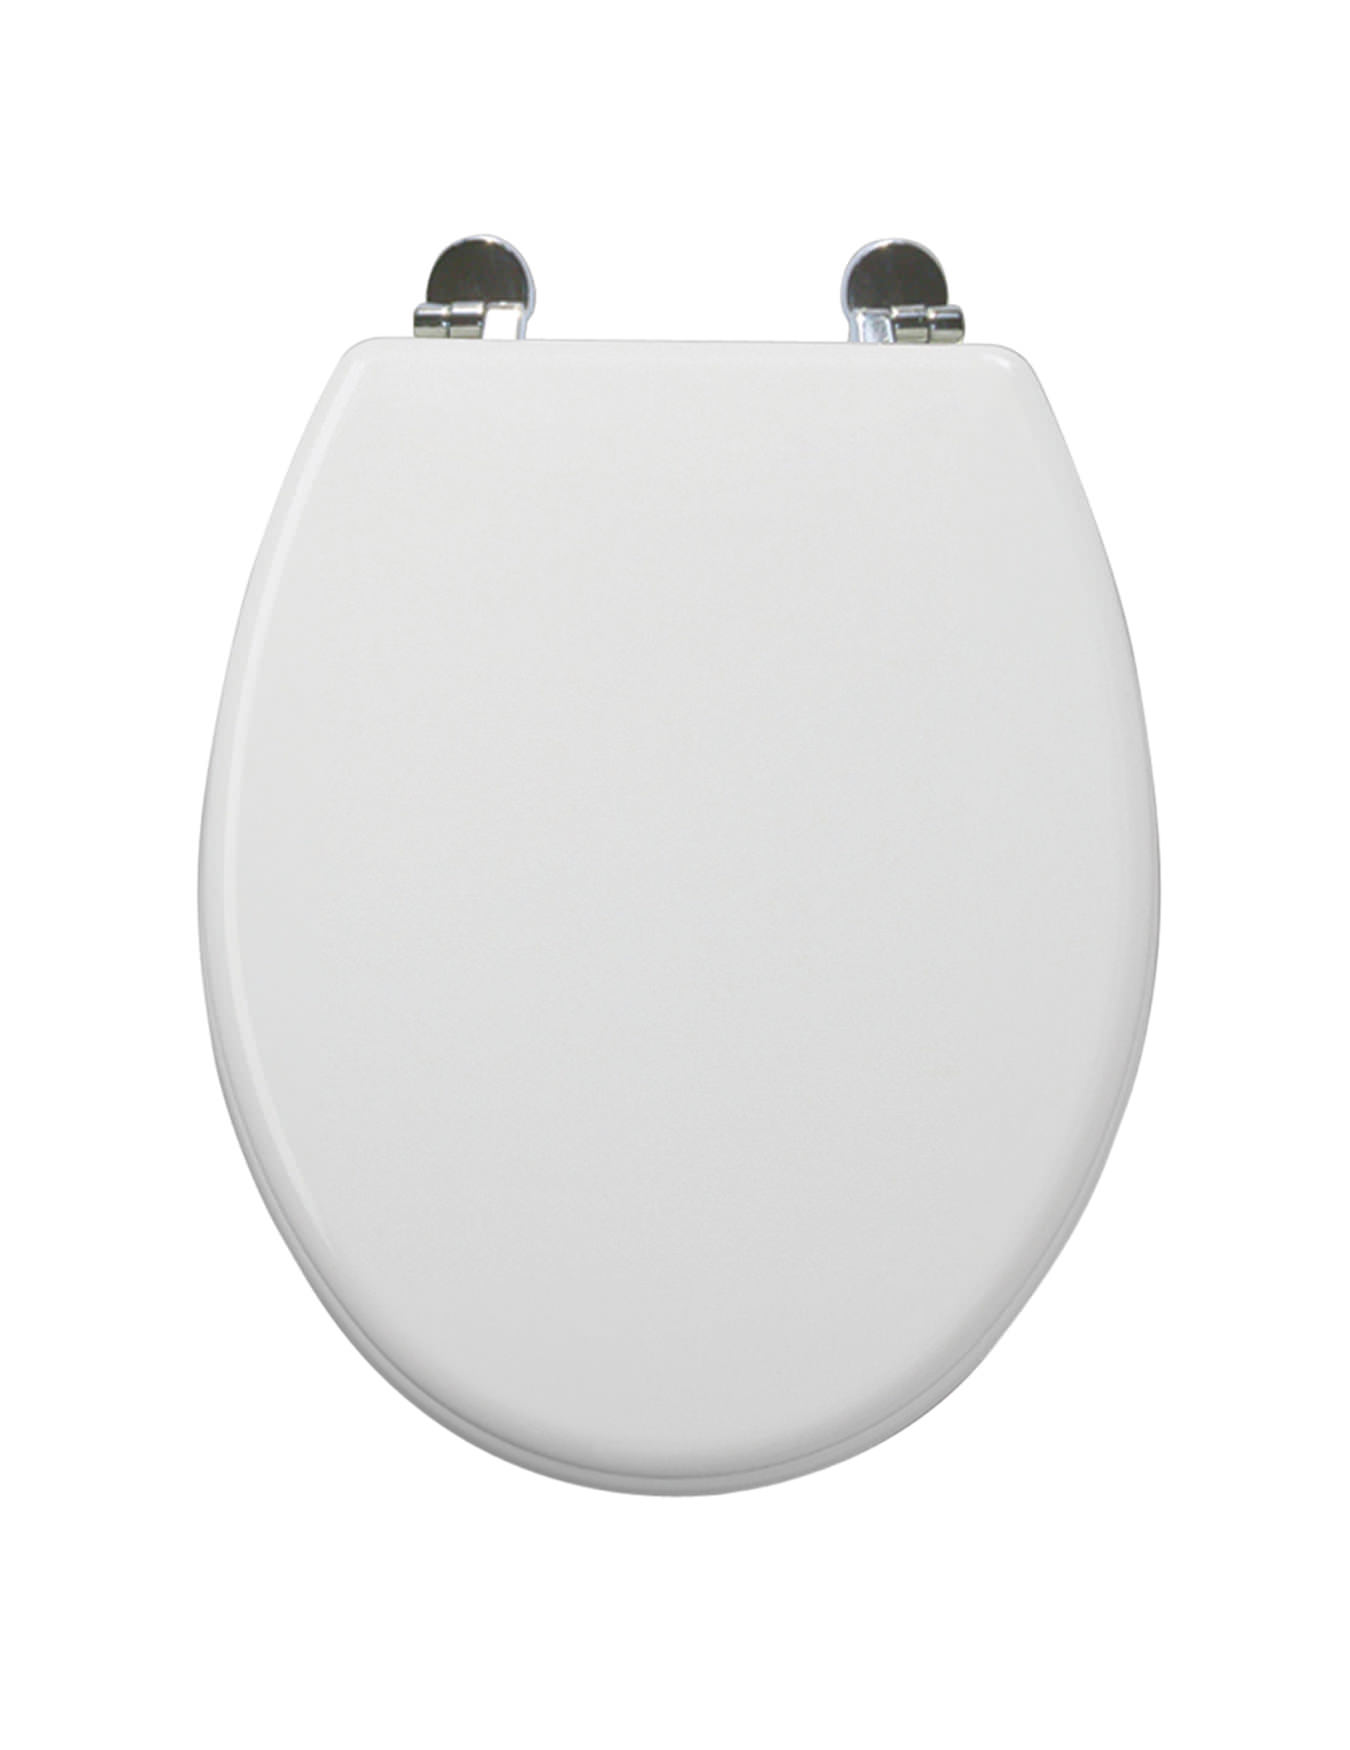 Roper Rhodes Standard  Soft Close Toilet Seats QS Supplies - Oak toilet seat soft close